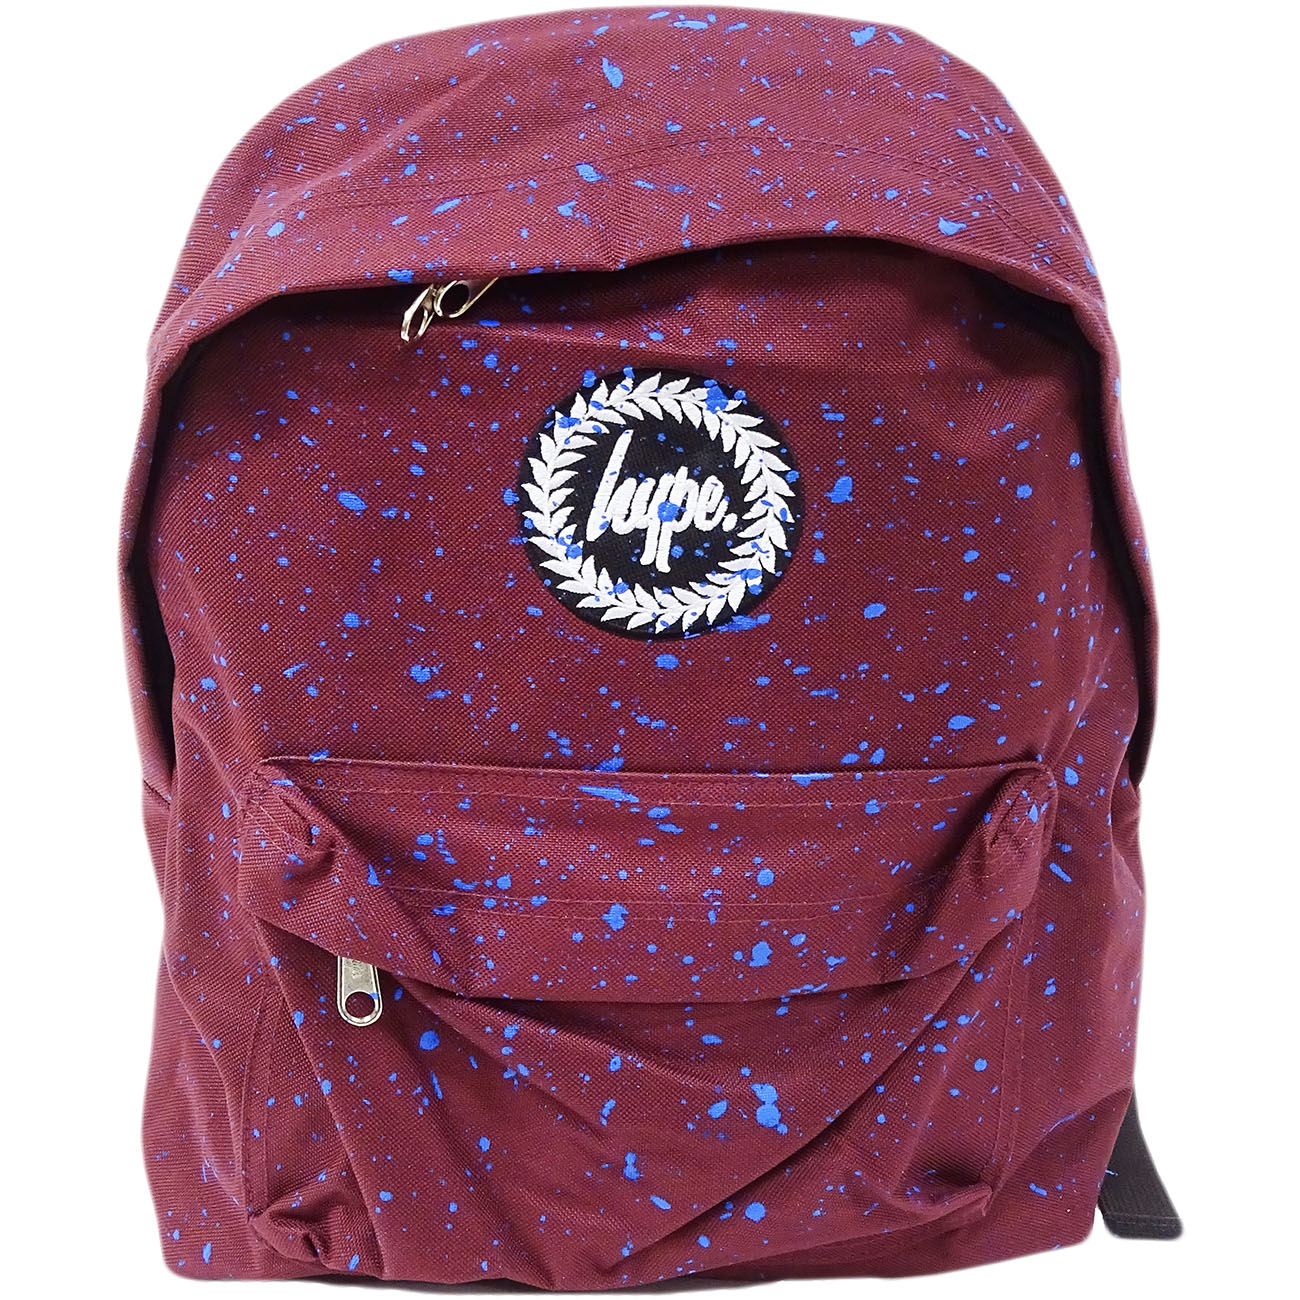 Hype Backpack Bag Burgundy and Blue Speckled